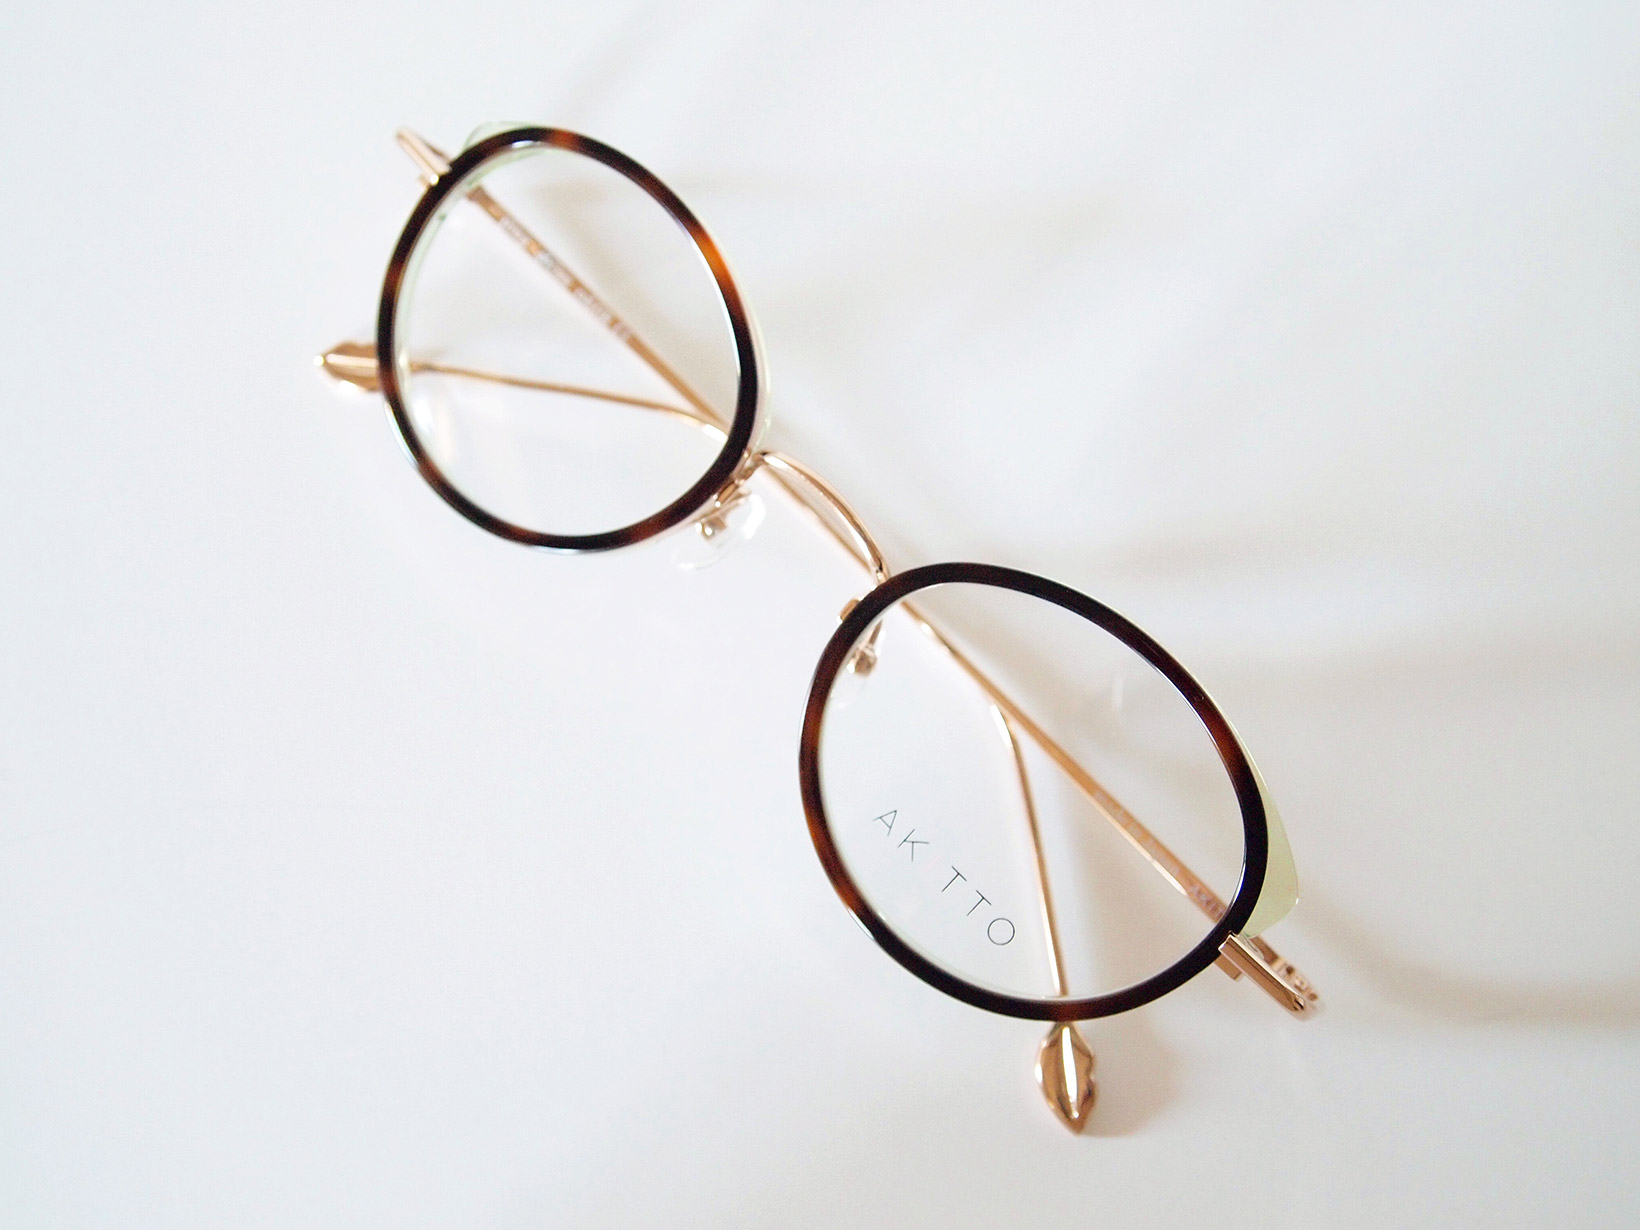 AKITTO 2018-1st pin3 color|GR size:46□22 material:titanium+acetate price:42,000-(+tax)